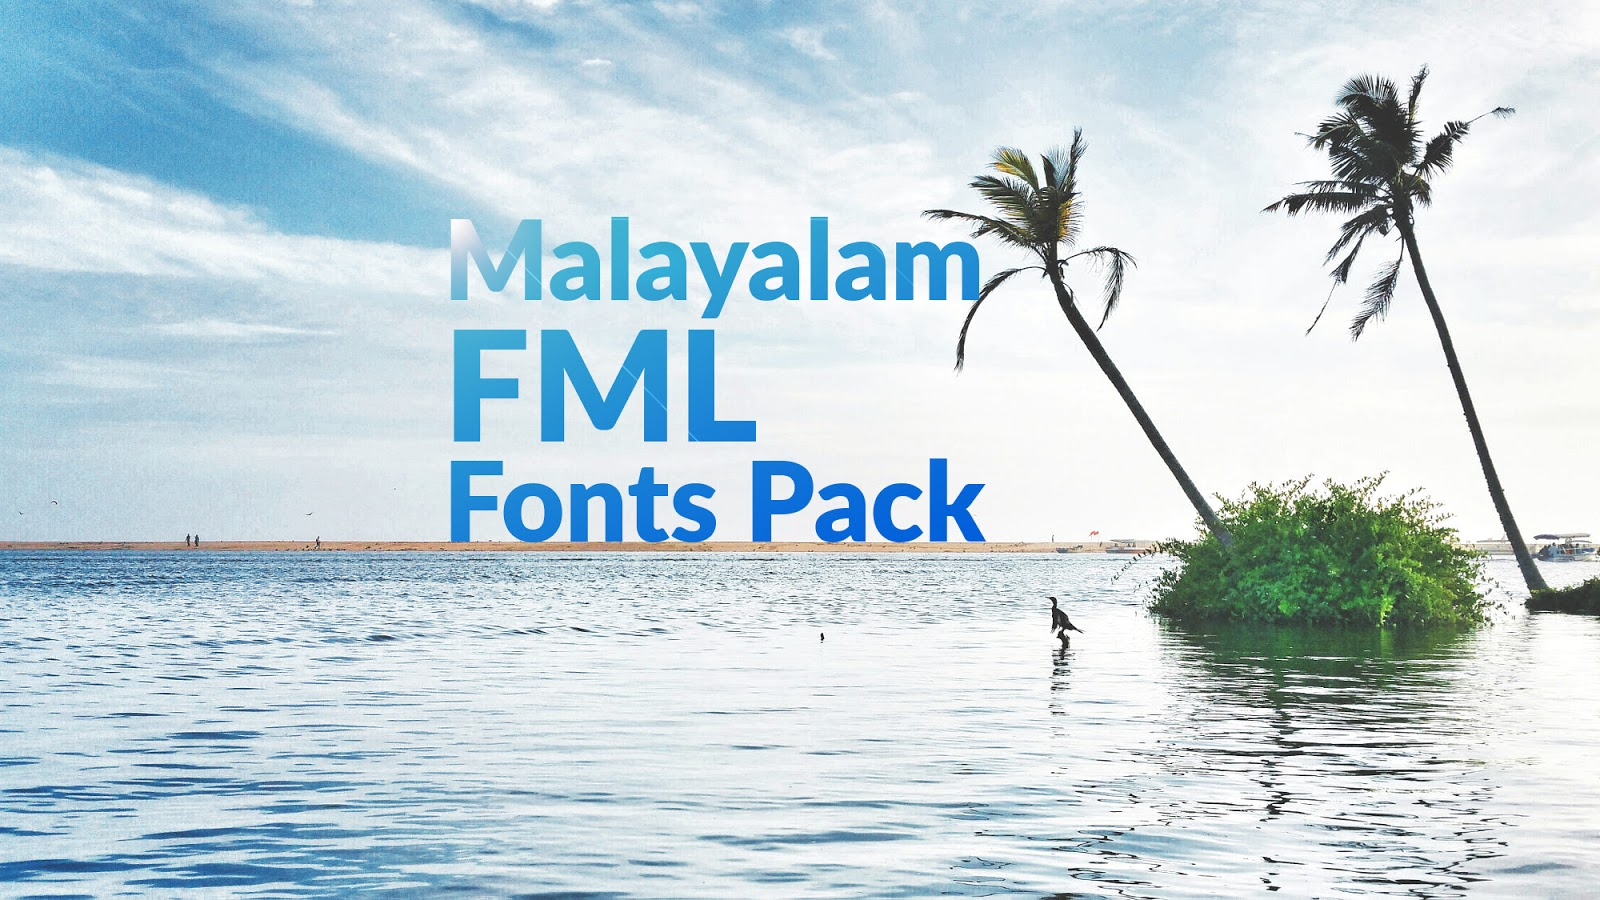 There we always notice one thing font, different fonts make word and syntax more beautiful. Free Download New Malayalam Fml Fonts Pack 2021